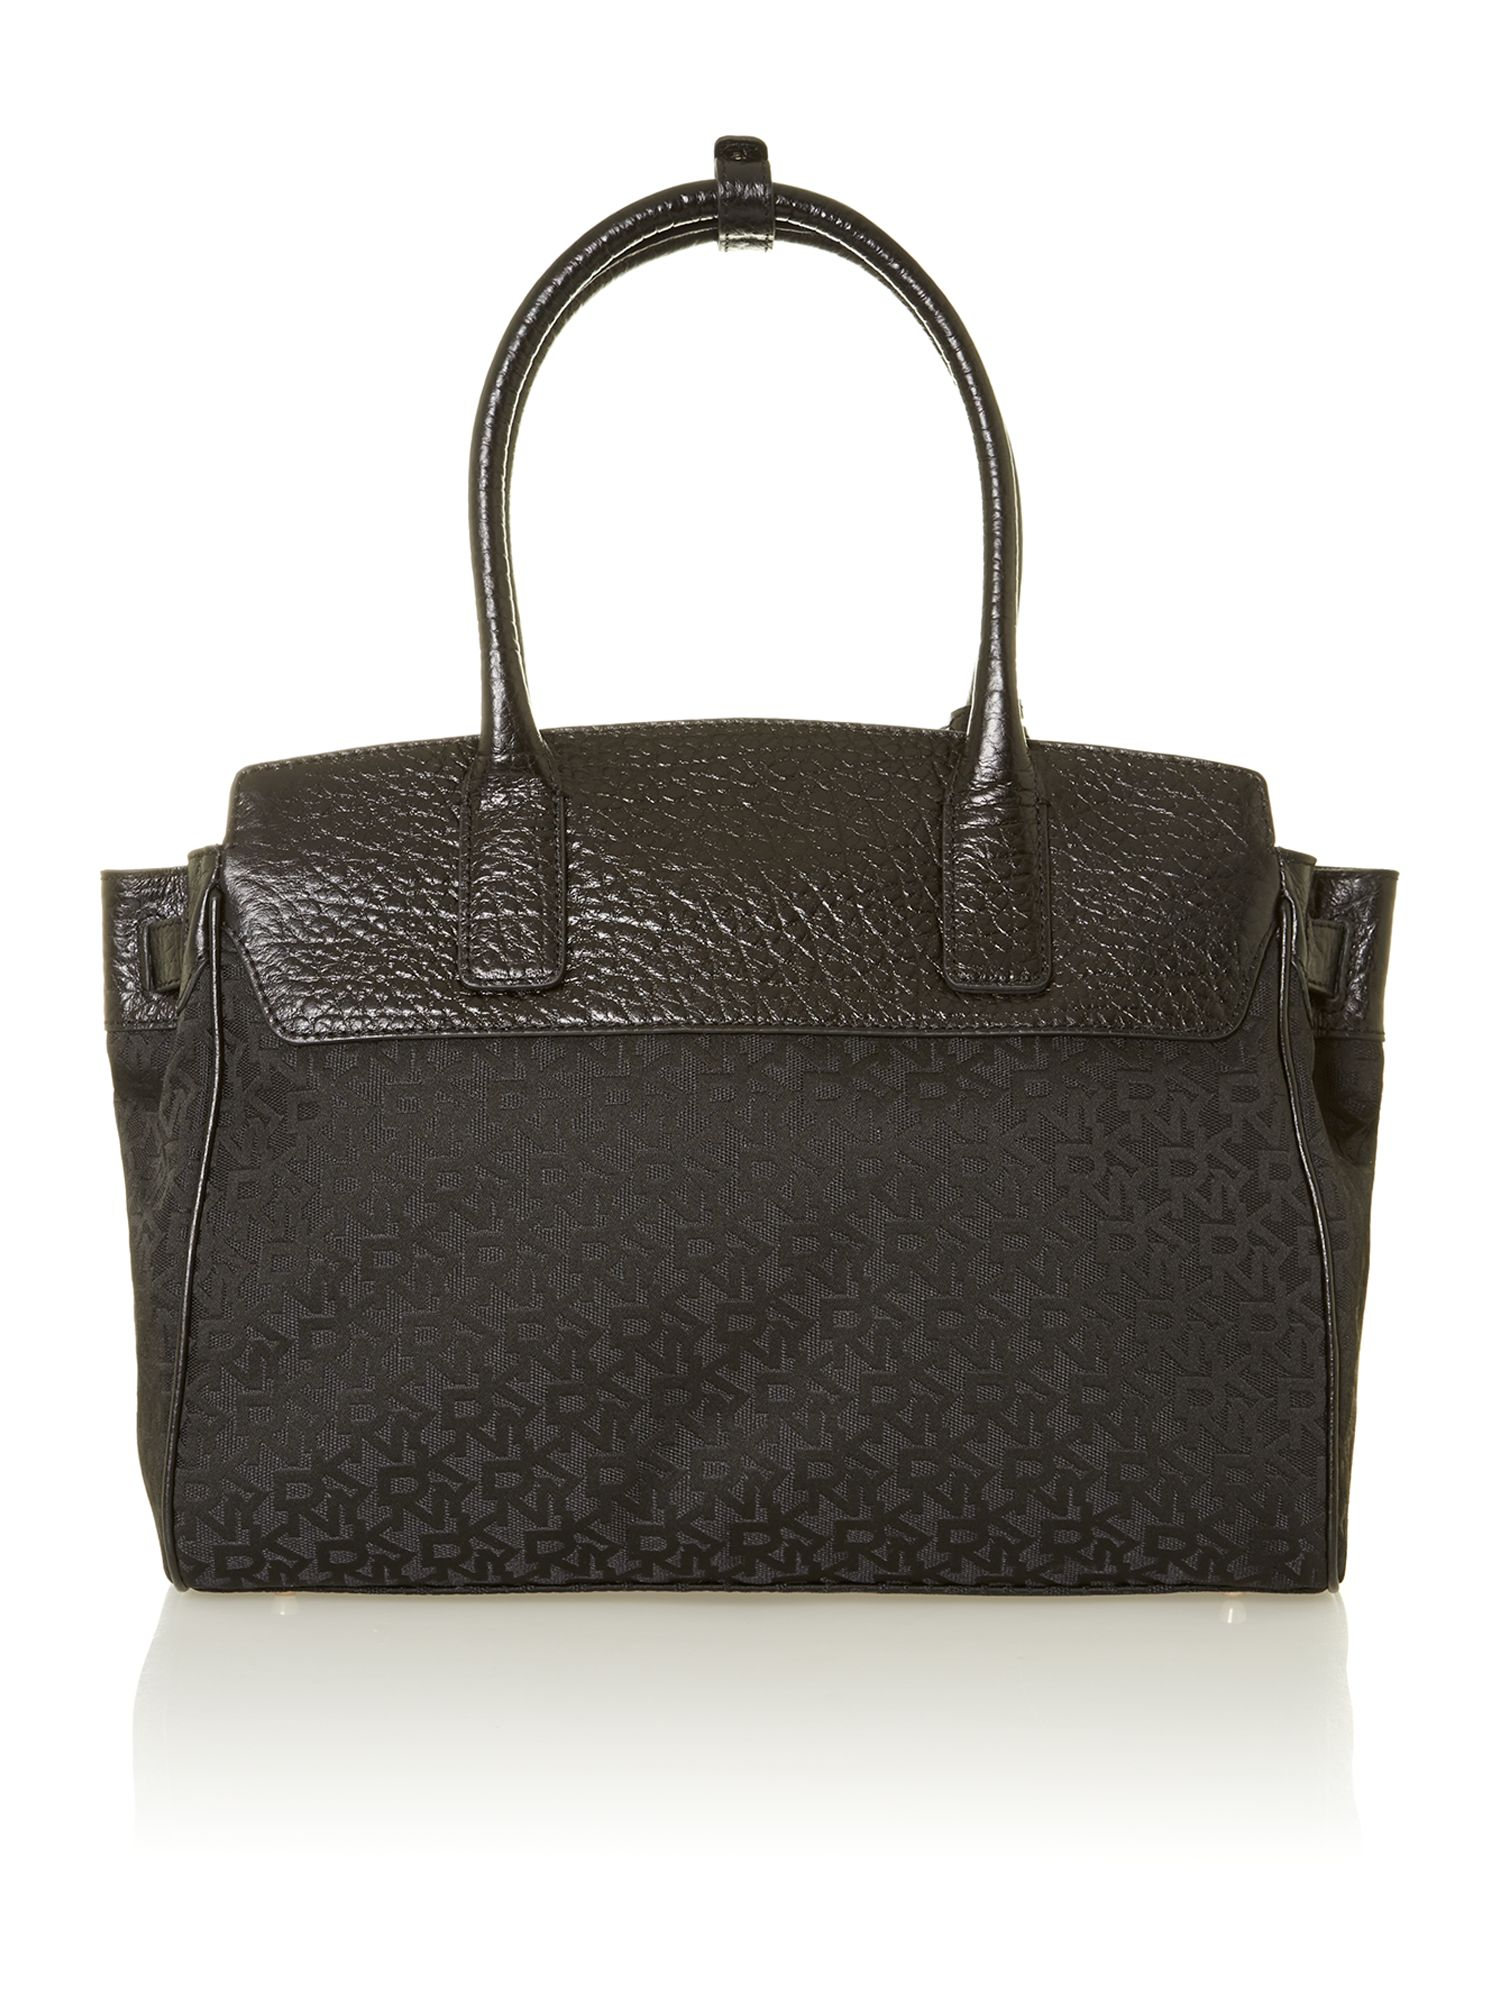 French grain black tote bag